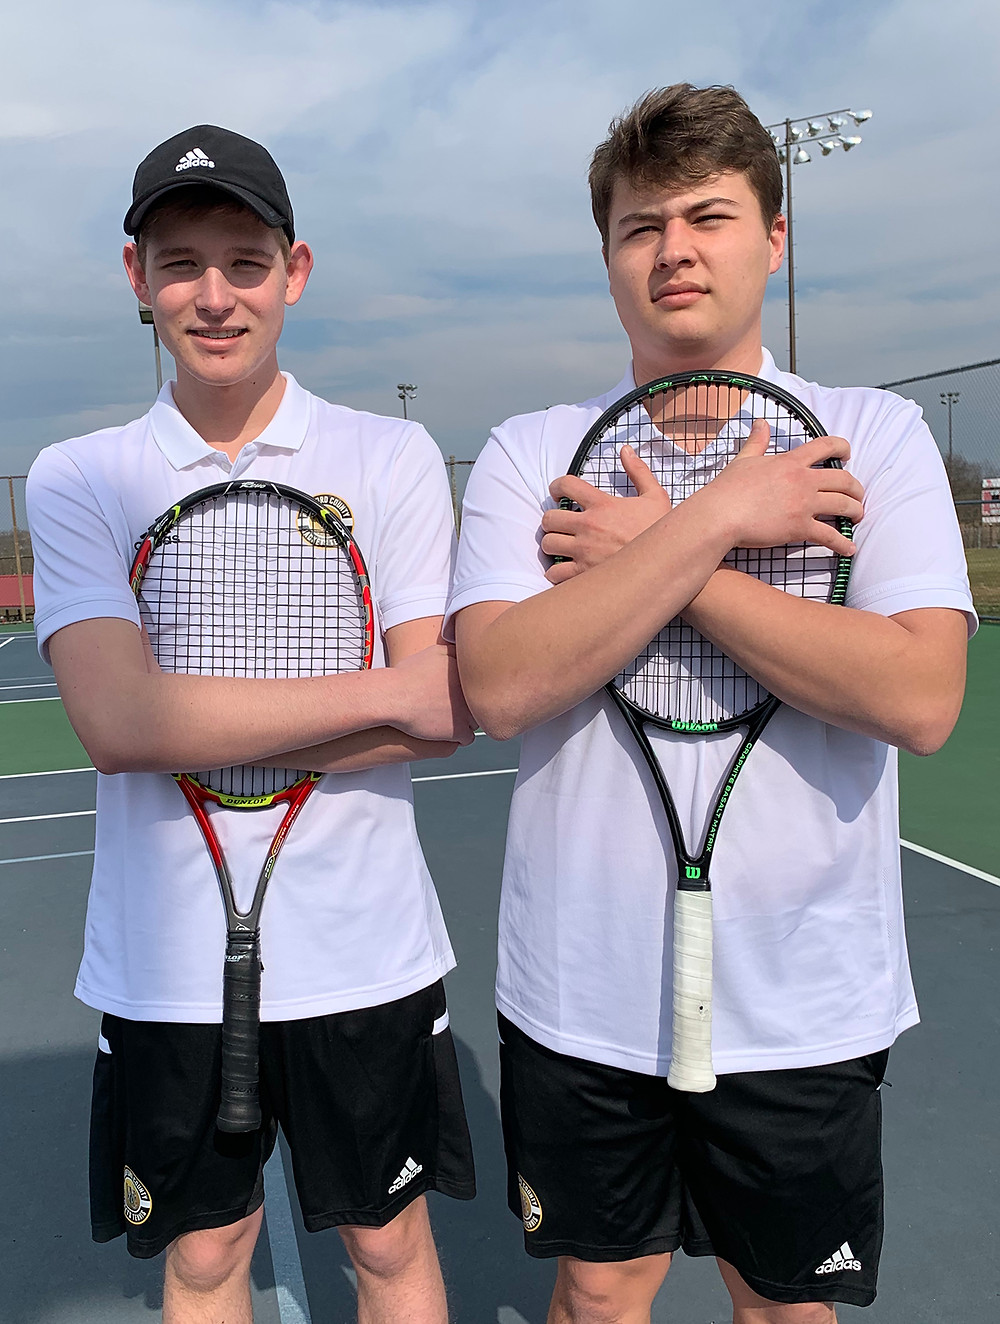 WCHS TENNIS PLAYERS Evan Bentley and Mason McIntyre reached the round of 16 in the KHSAA State Tournament. Bentley, left, is a sophomore, while McIntyre, right, is a graduating senior. The pair said their win in the round of 32 was undoubtedly their best performance of the season. (Photo submitted)